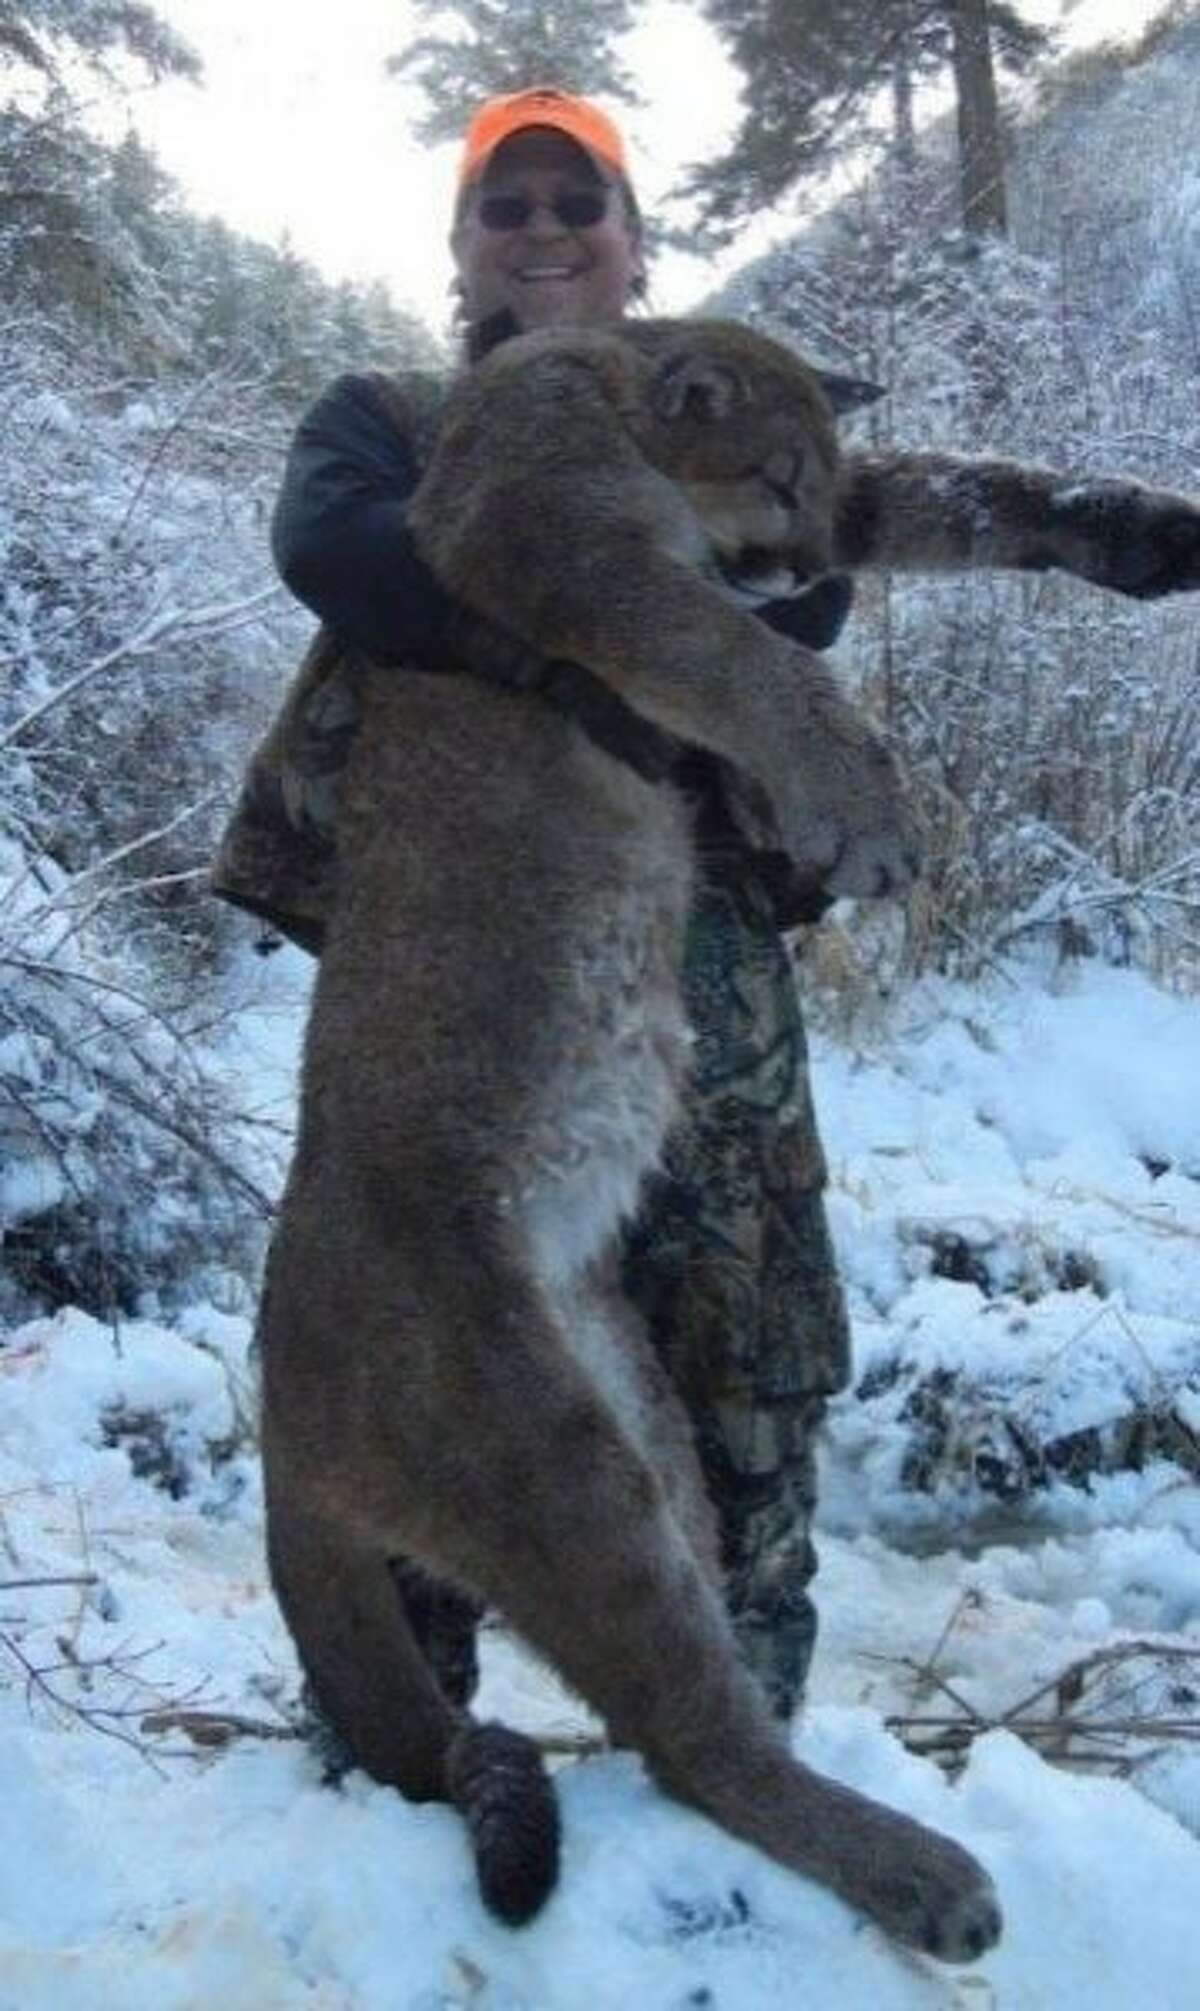 Former California Fish and Game Commission President Daniel Richards was photographed showing him grinning as he holds up the body of a mountain lion he shot, killed and ate in Idaho.